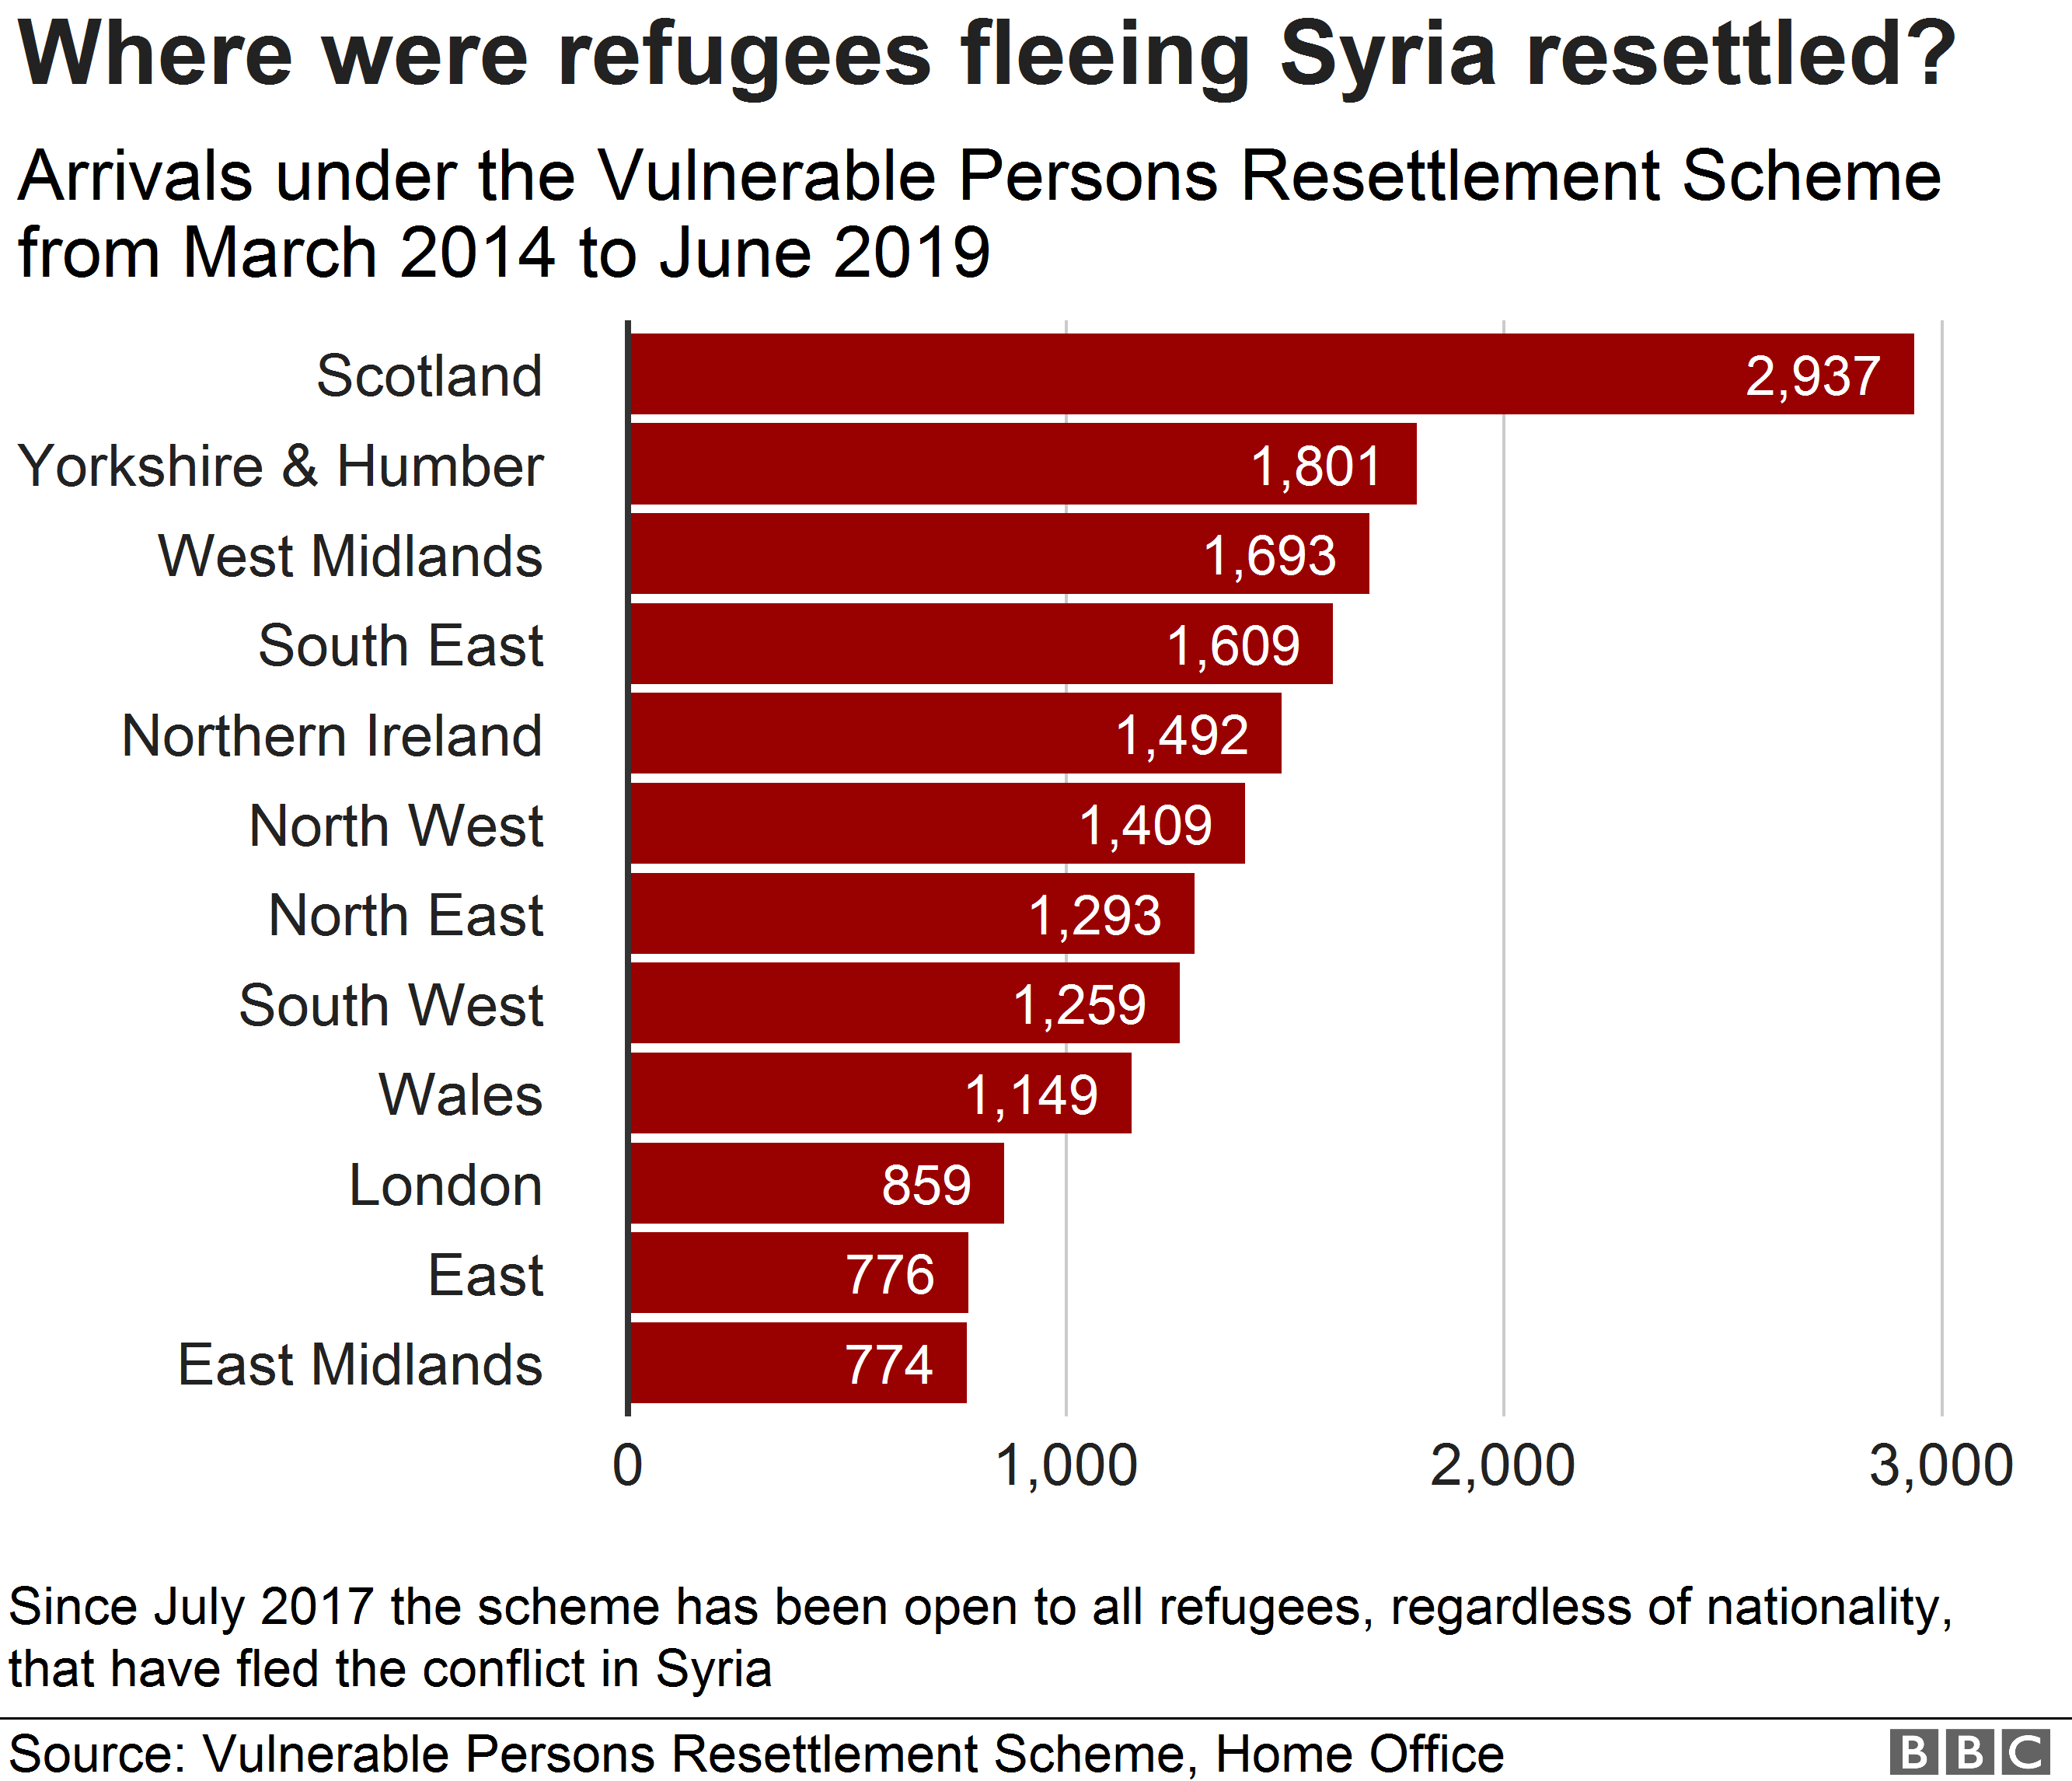 Chart showing figures for arrivals under the Vulnerable Persons Resettlemtn Scheme